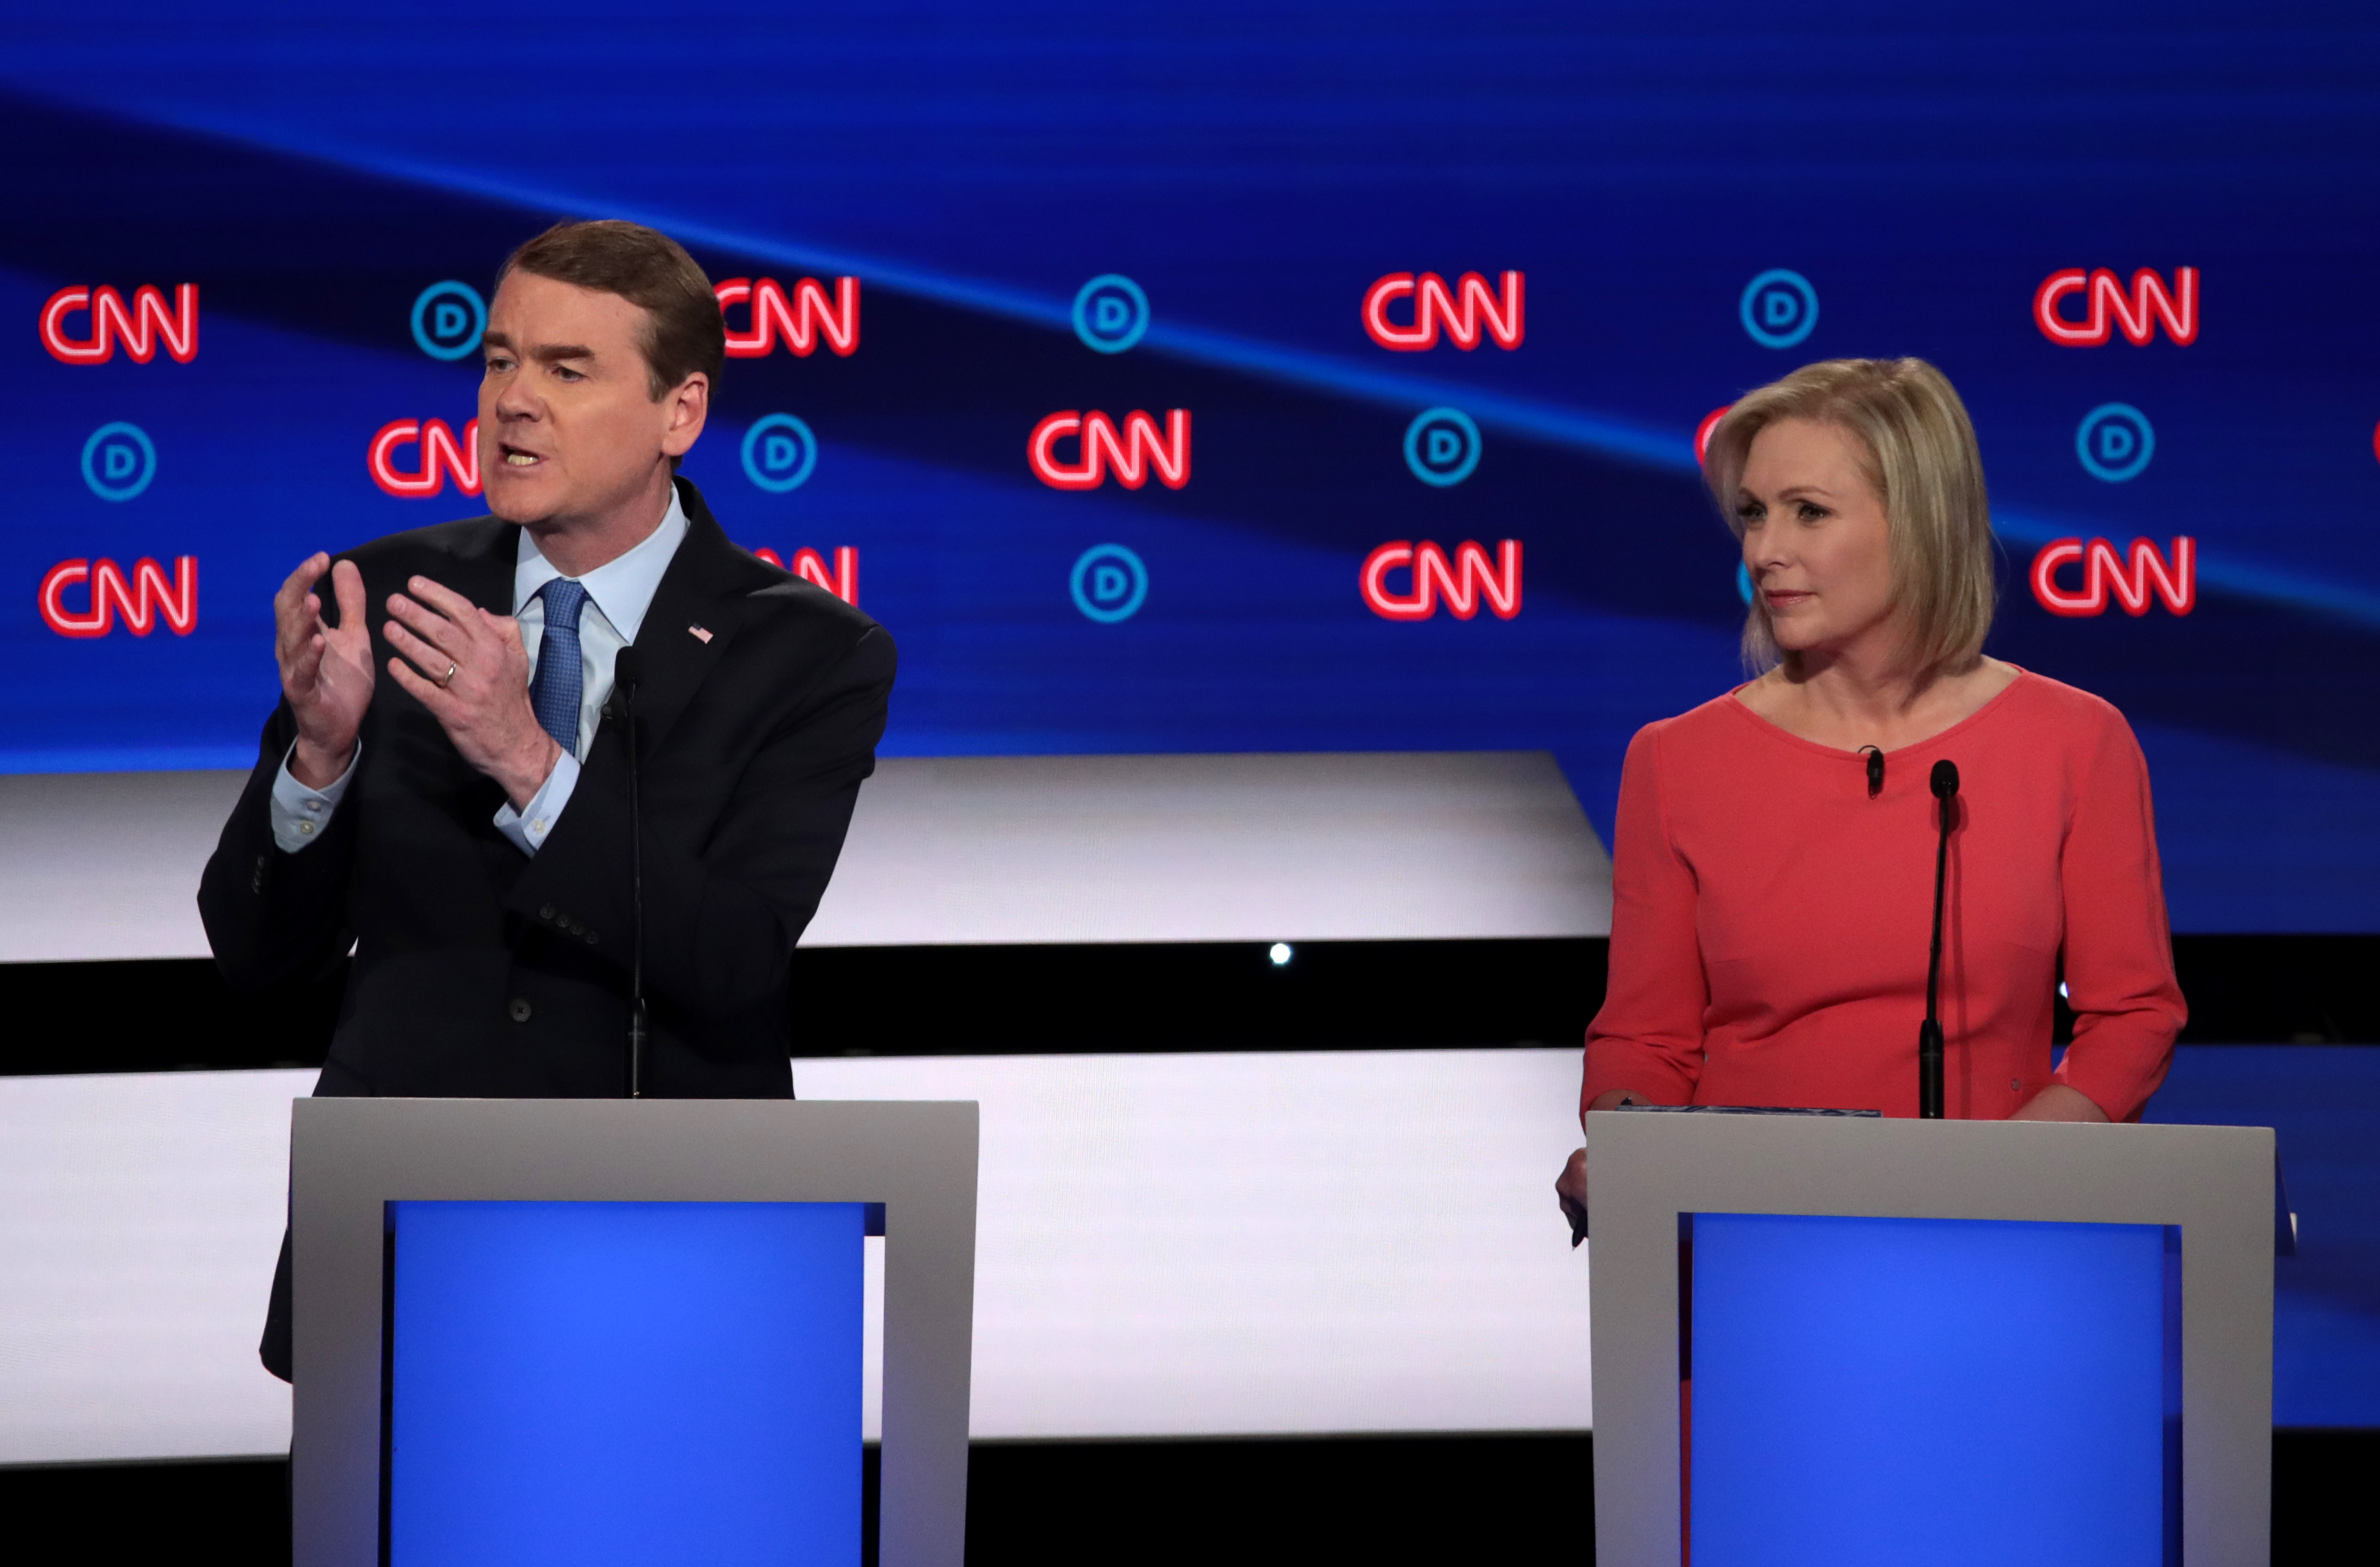 DETROIT, MICHIGAN - JULY 31: Democratic presidential candidate Sen. Michael Bennet (D-CO) speaks while Sen. Kirsten Gillibrand (D-NY) listens during the Democratic Presidential Debate at the Fox Theatre July 31, 2019 in Detroit, Michigan. 20 Democratic presidential candidates were split into two groups of 10 to take part in the debate sponsored by CNN held over two nights at Detroit's Fox Theatre. (Photo by Scott Olson/Getty Images)